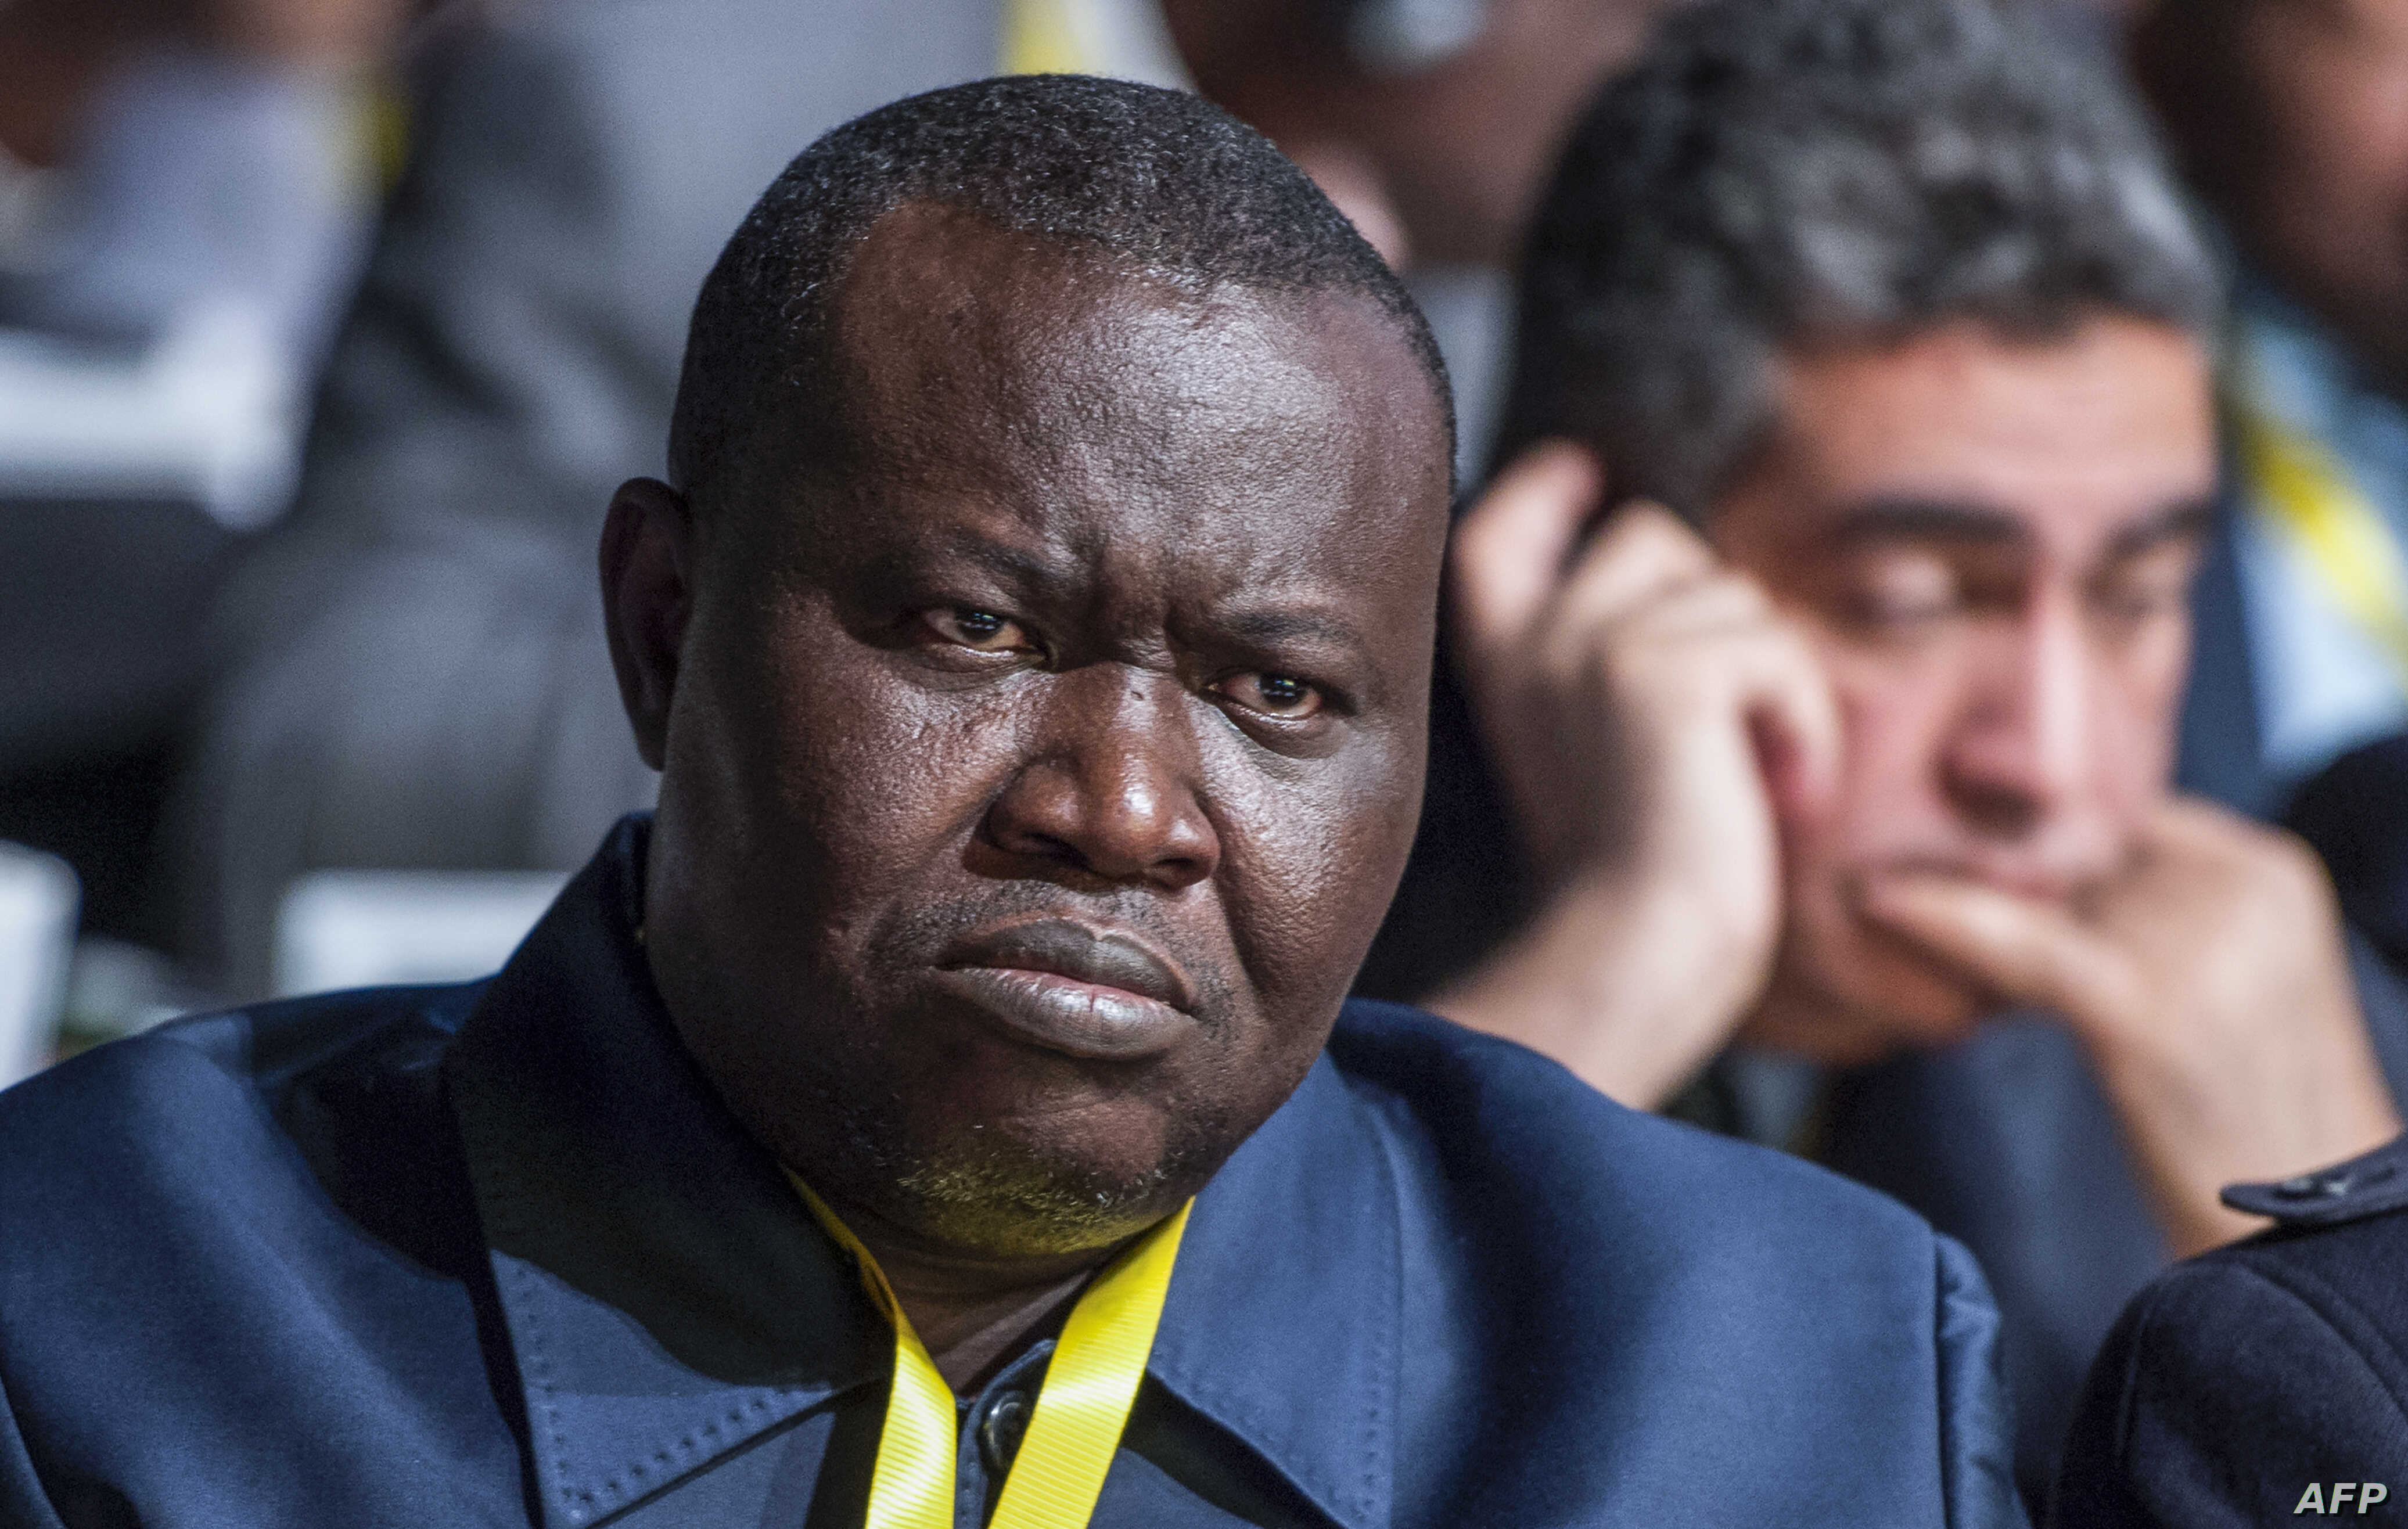 FILE - Central African Republic's football federation chief, Patrice-Edouard Ngaissona, attends the 40th Confederation of African Football general assembly in Casablanca, Morocco, Feb. 2, 2018.